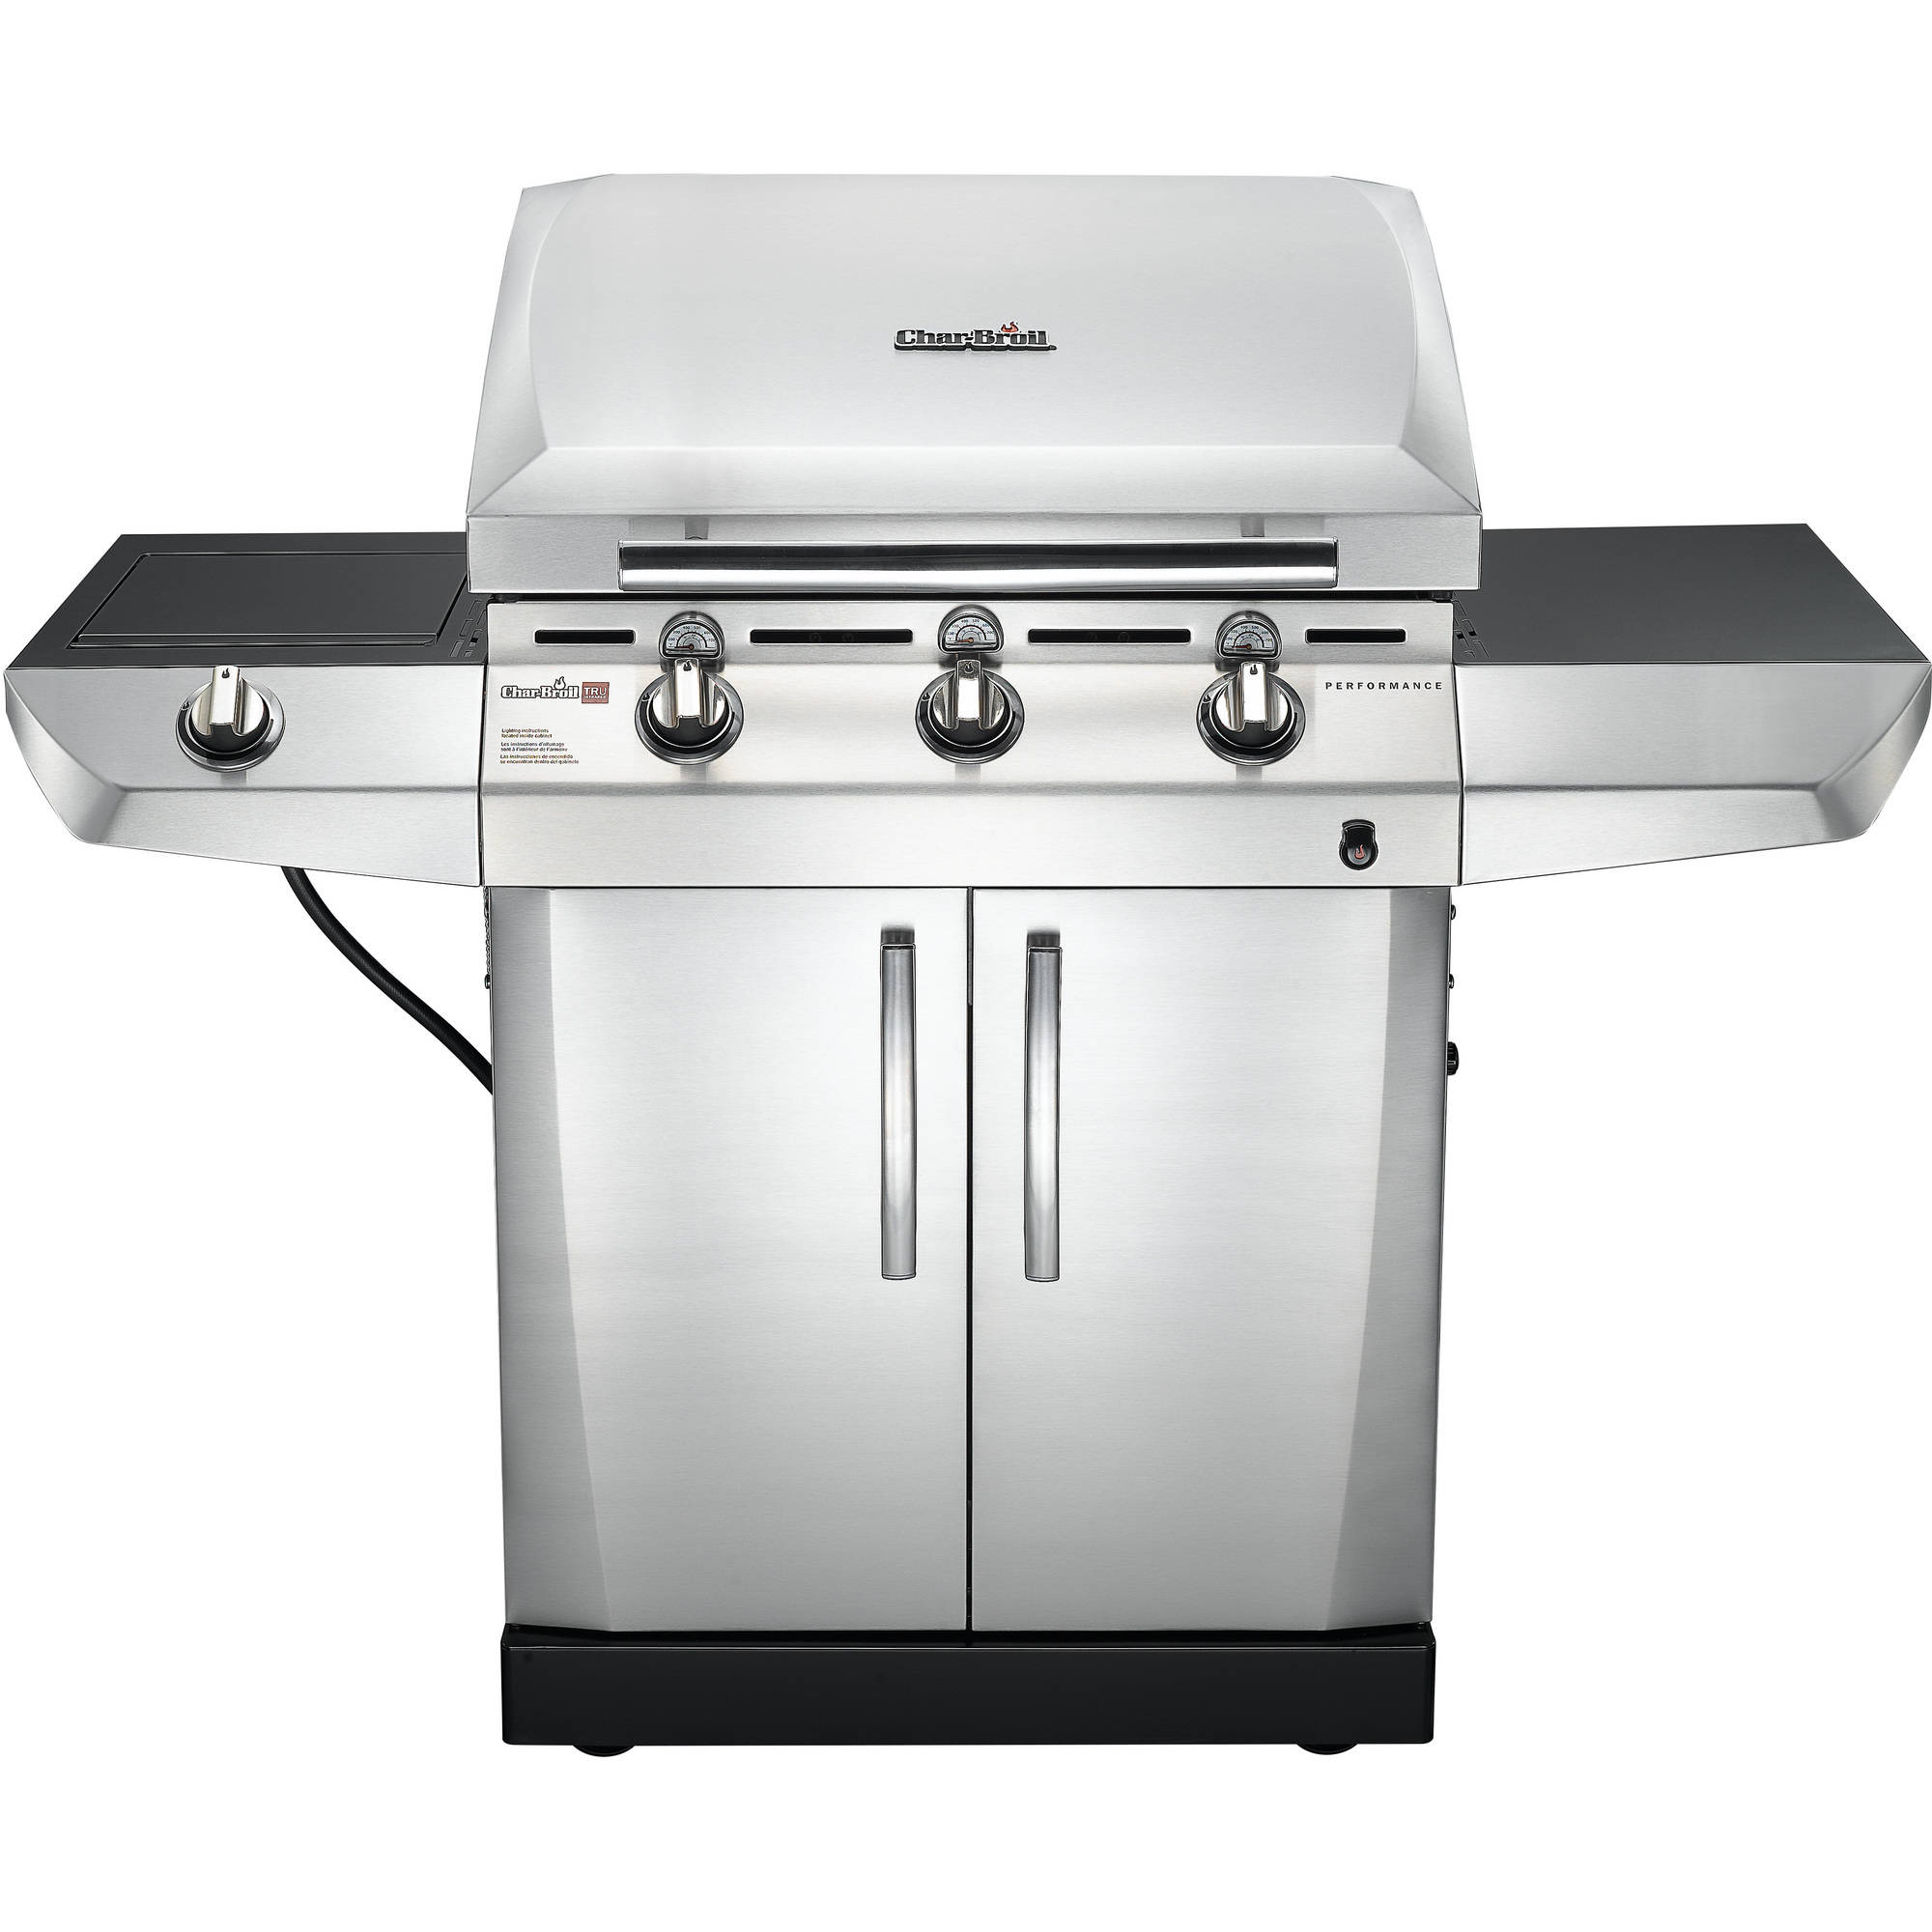 Char Broil Performance TRU Infrared T 36D 3 Burner Gas Grill with